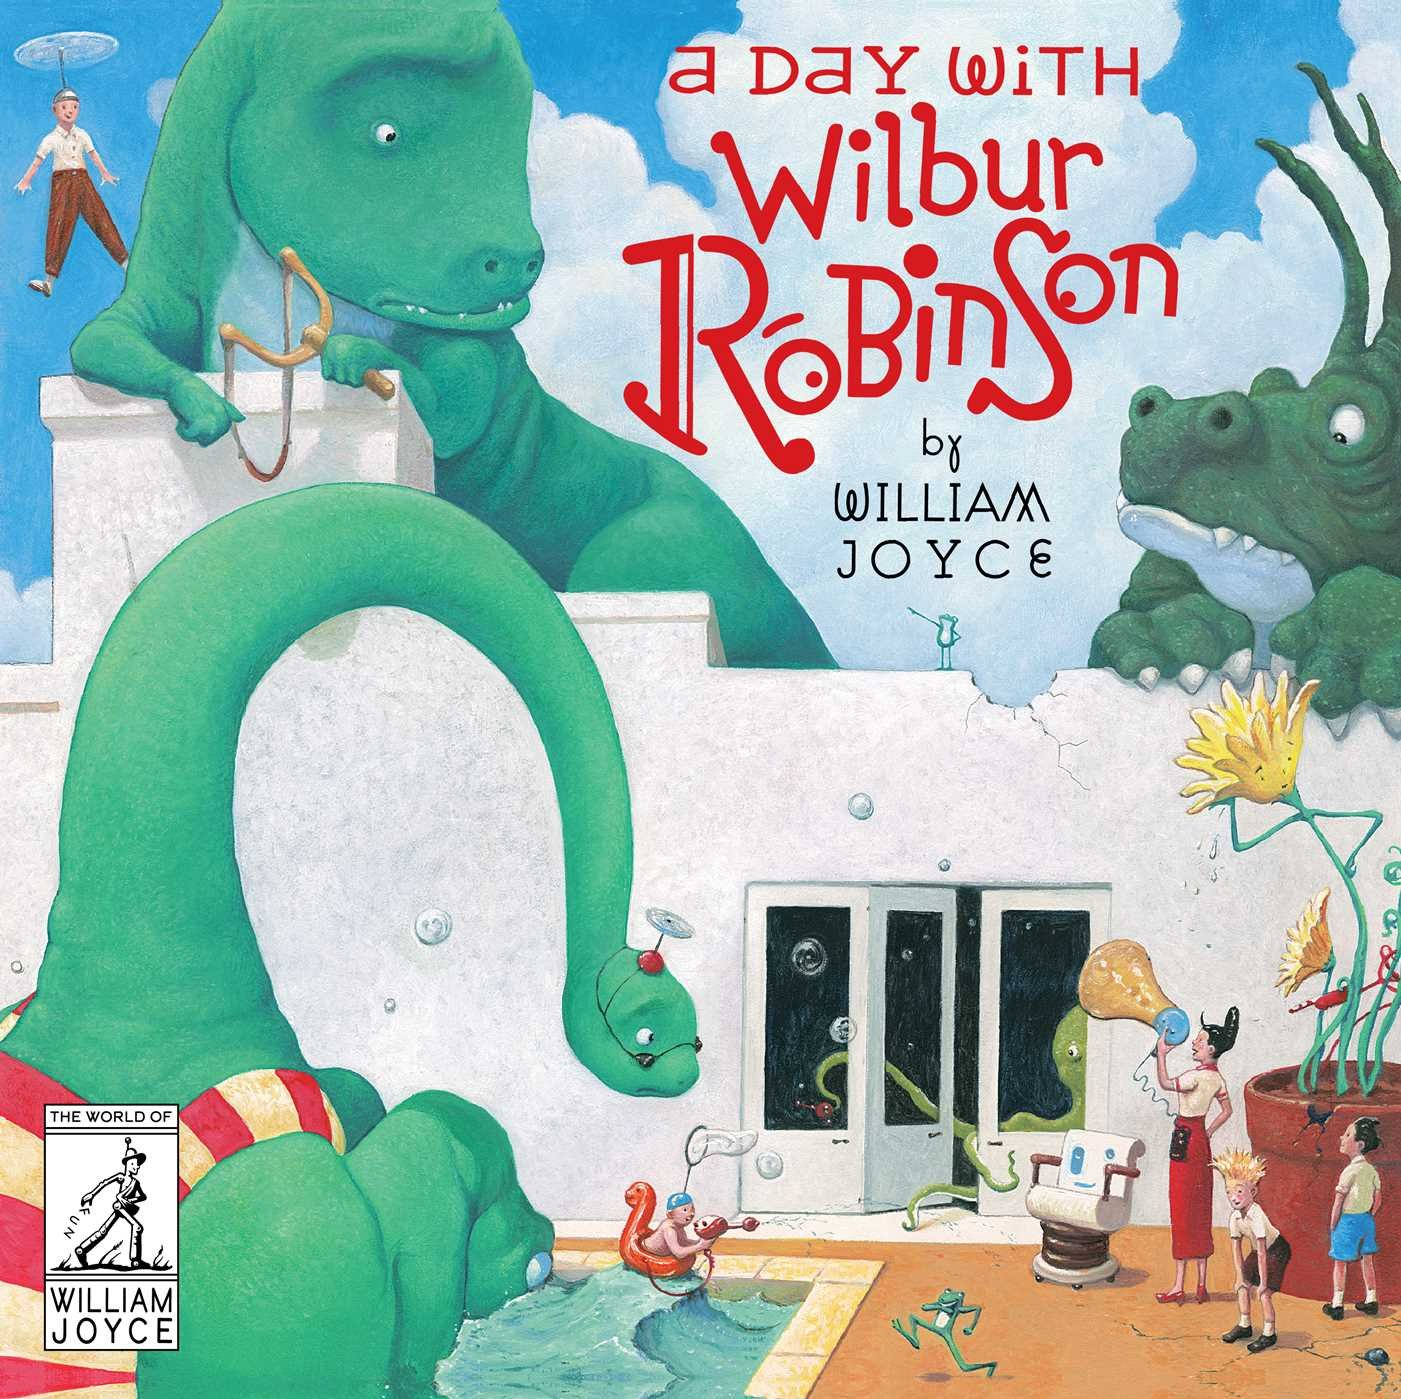 A Day with Wilbur Robinson World of William Joyce: Amazon.co.uk: William Joyce: Books